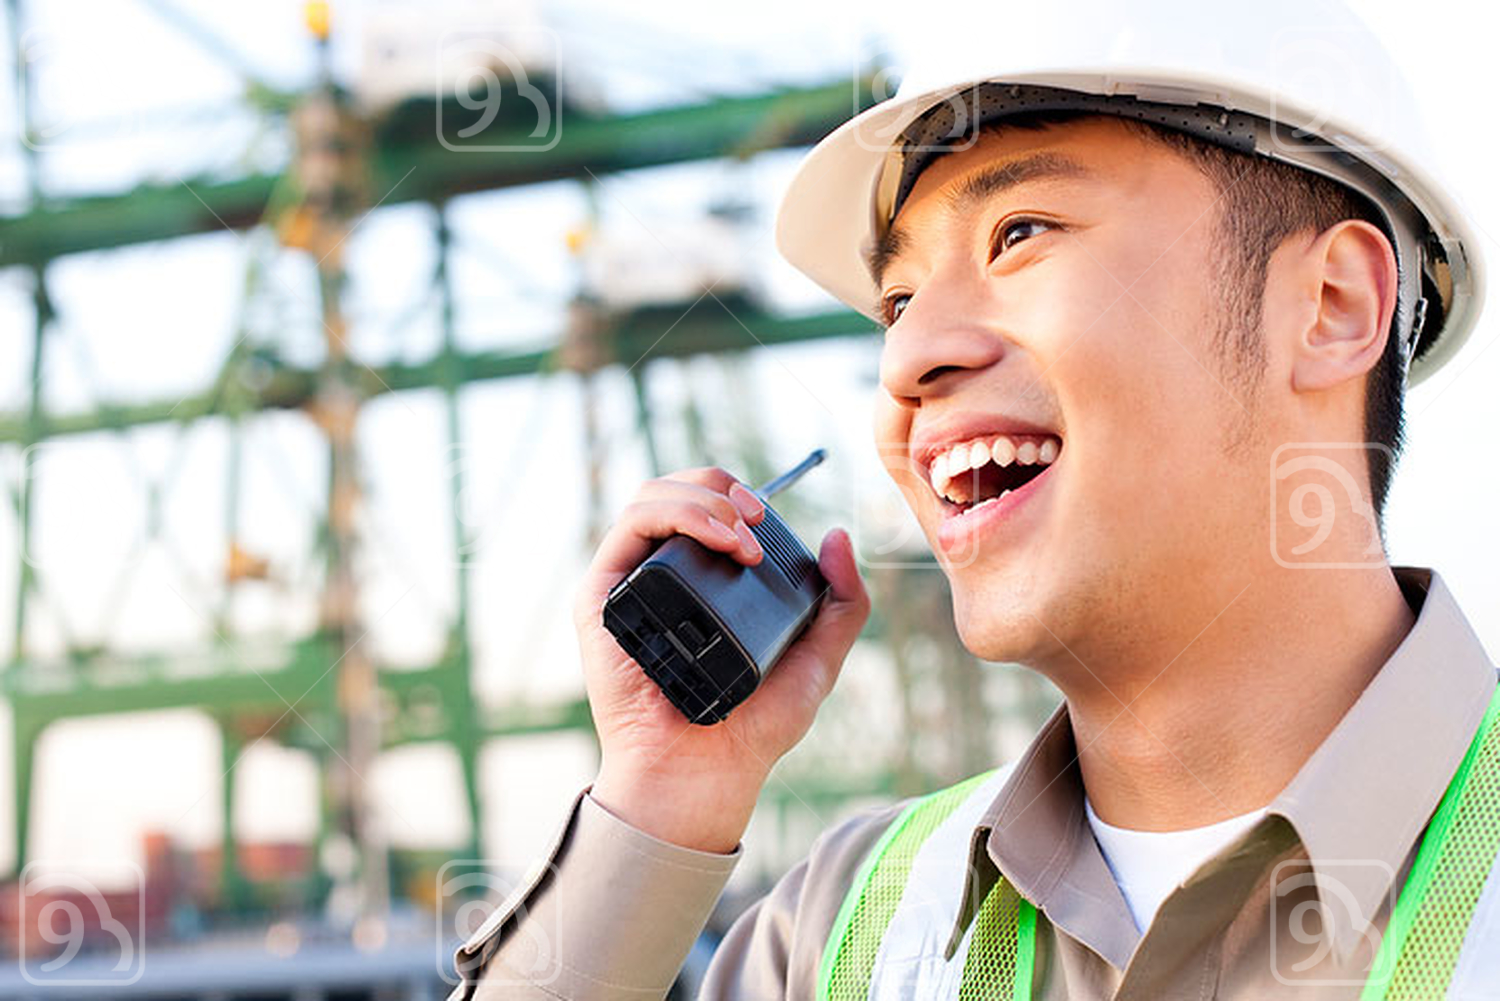 Chinese shipping industry worker using a walkie-talkie talking